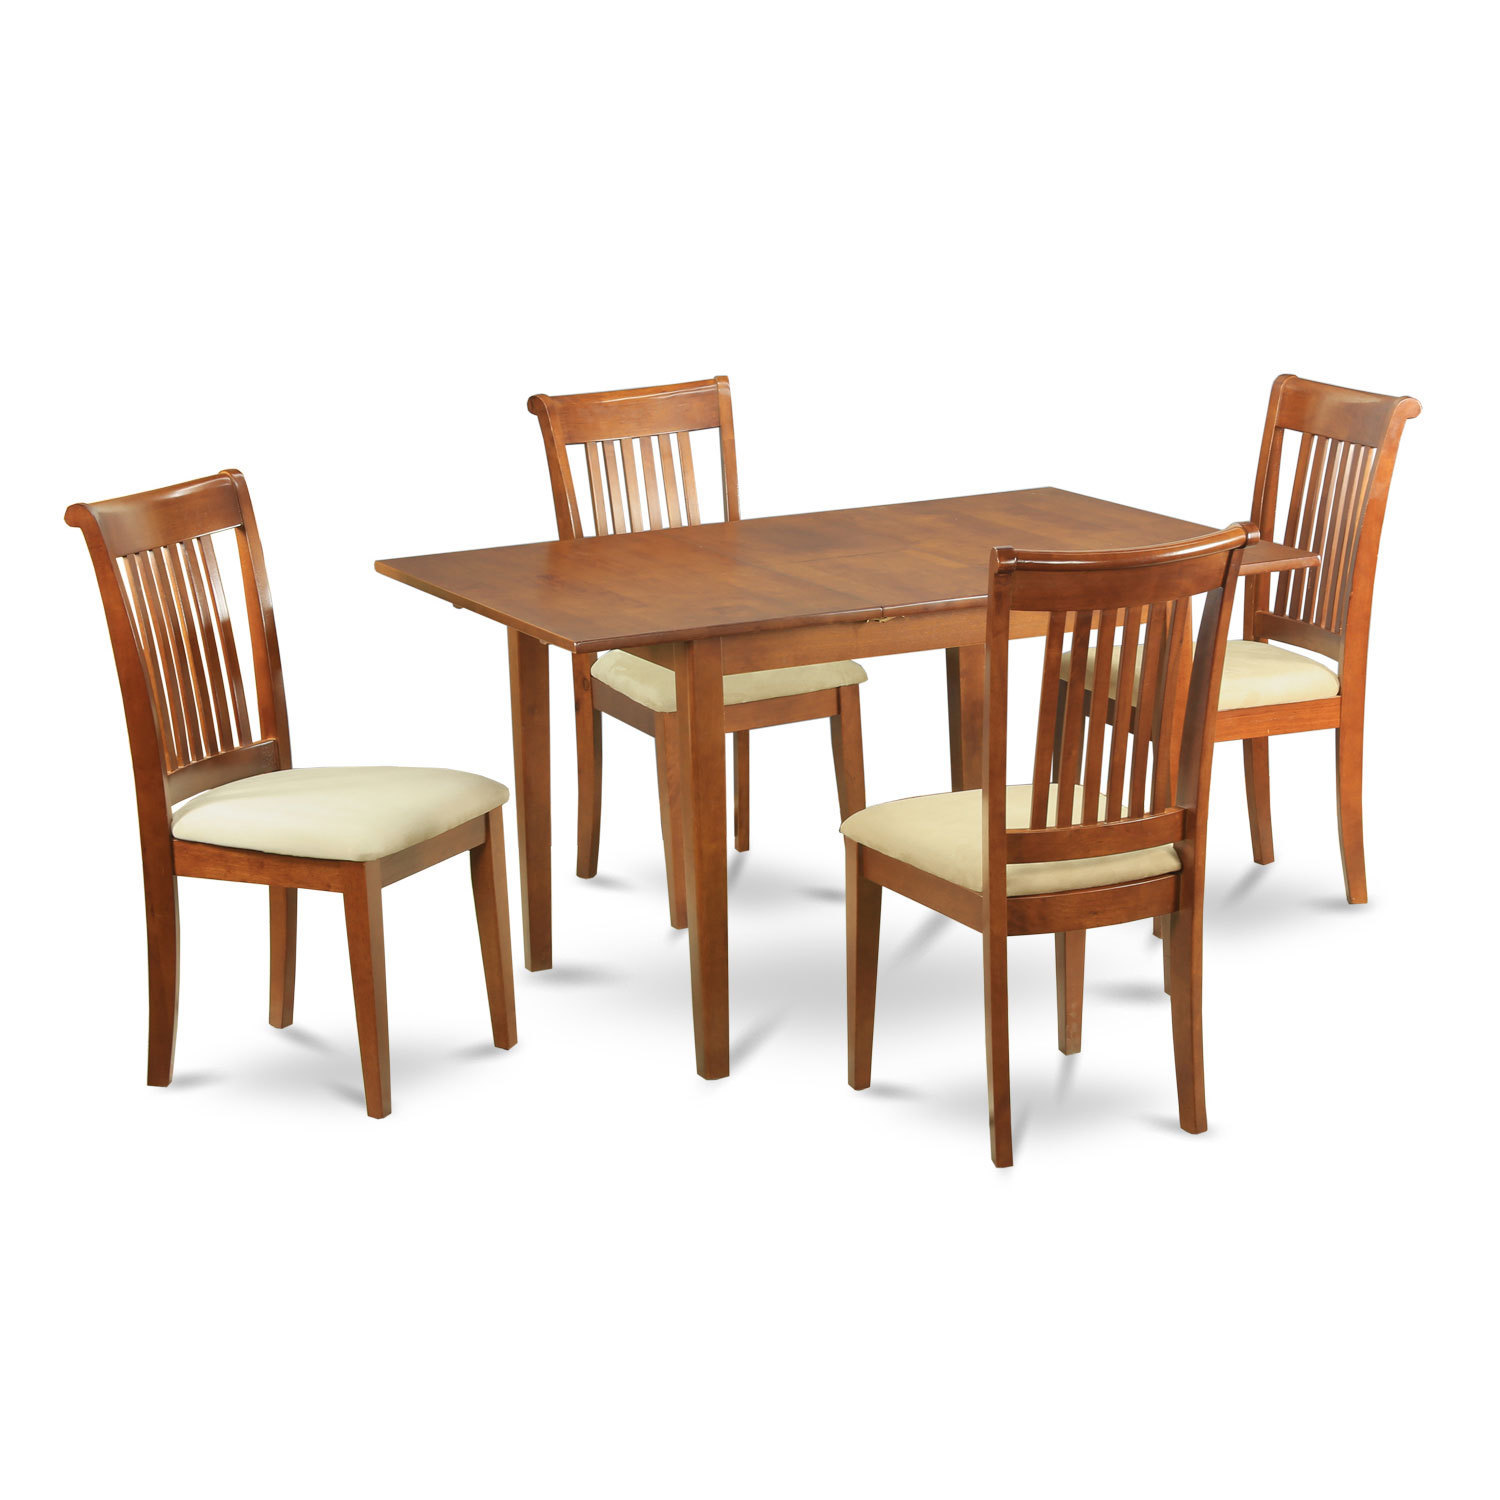 Small dinette set design homesfeed for Dinette set with bench